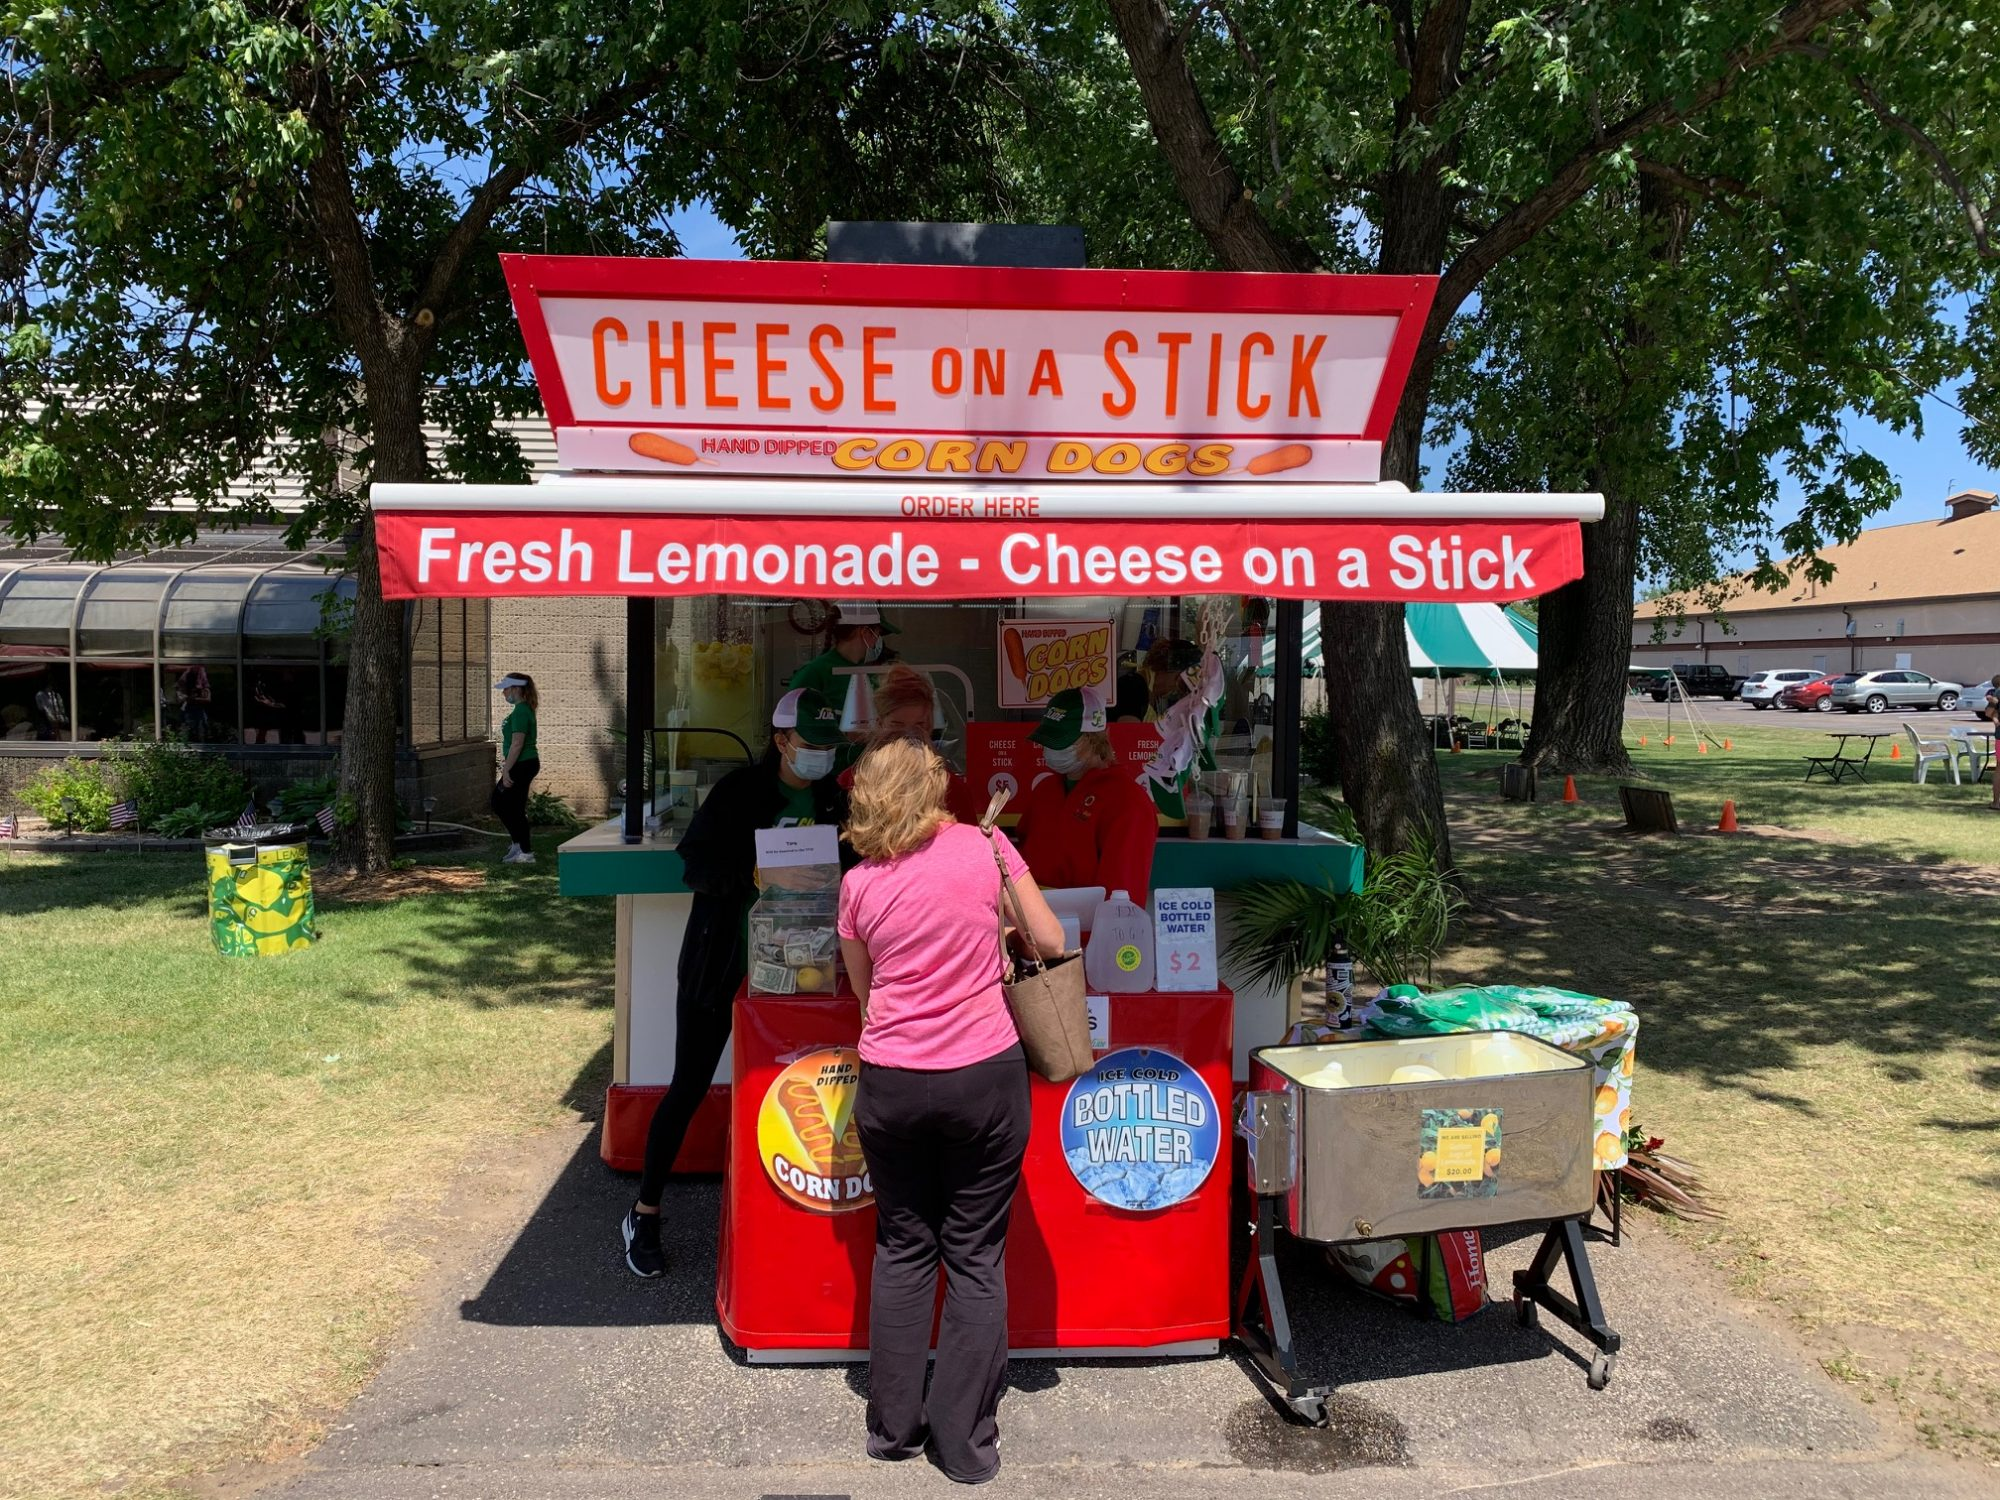 State fair food vendor